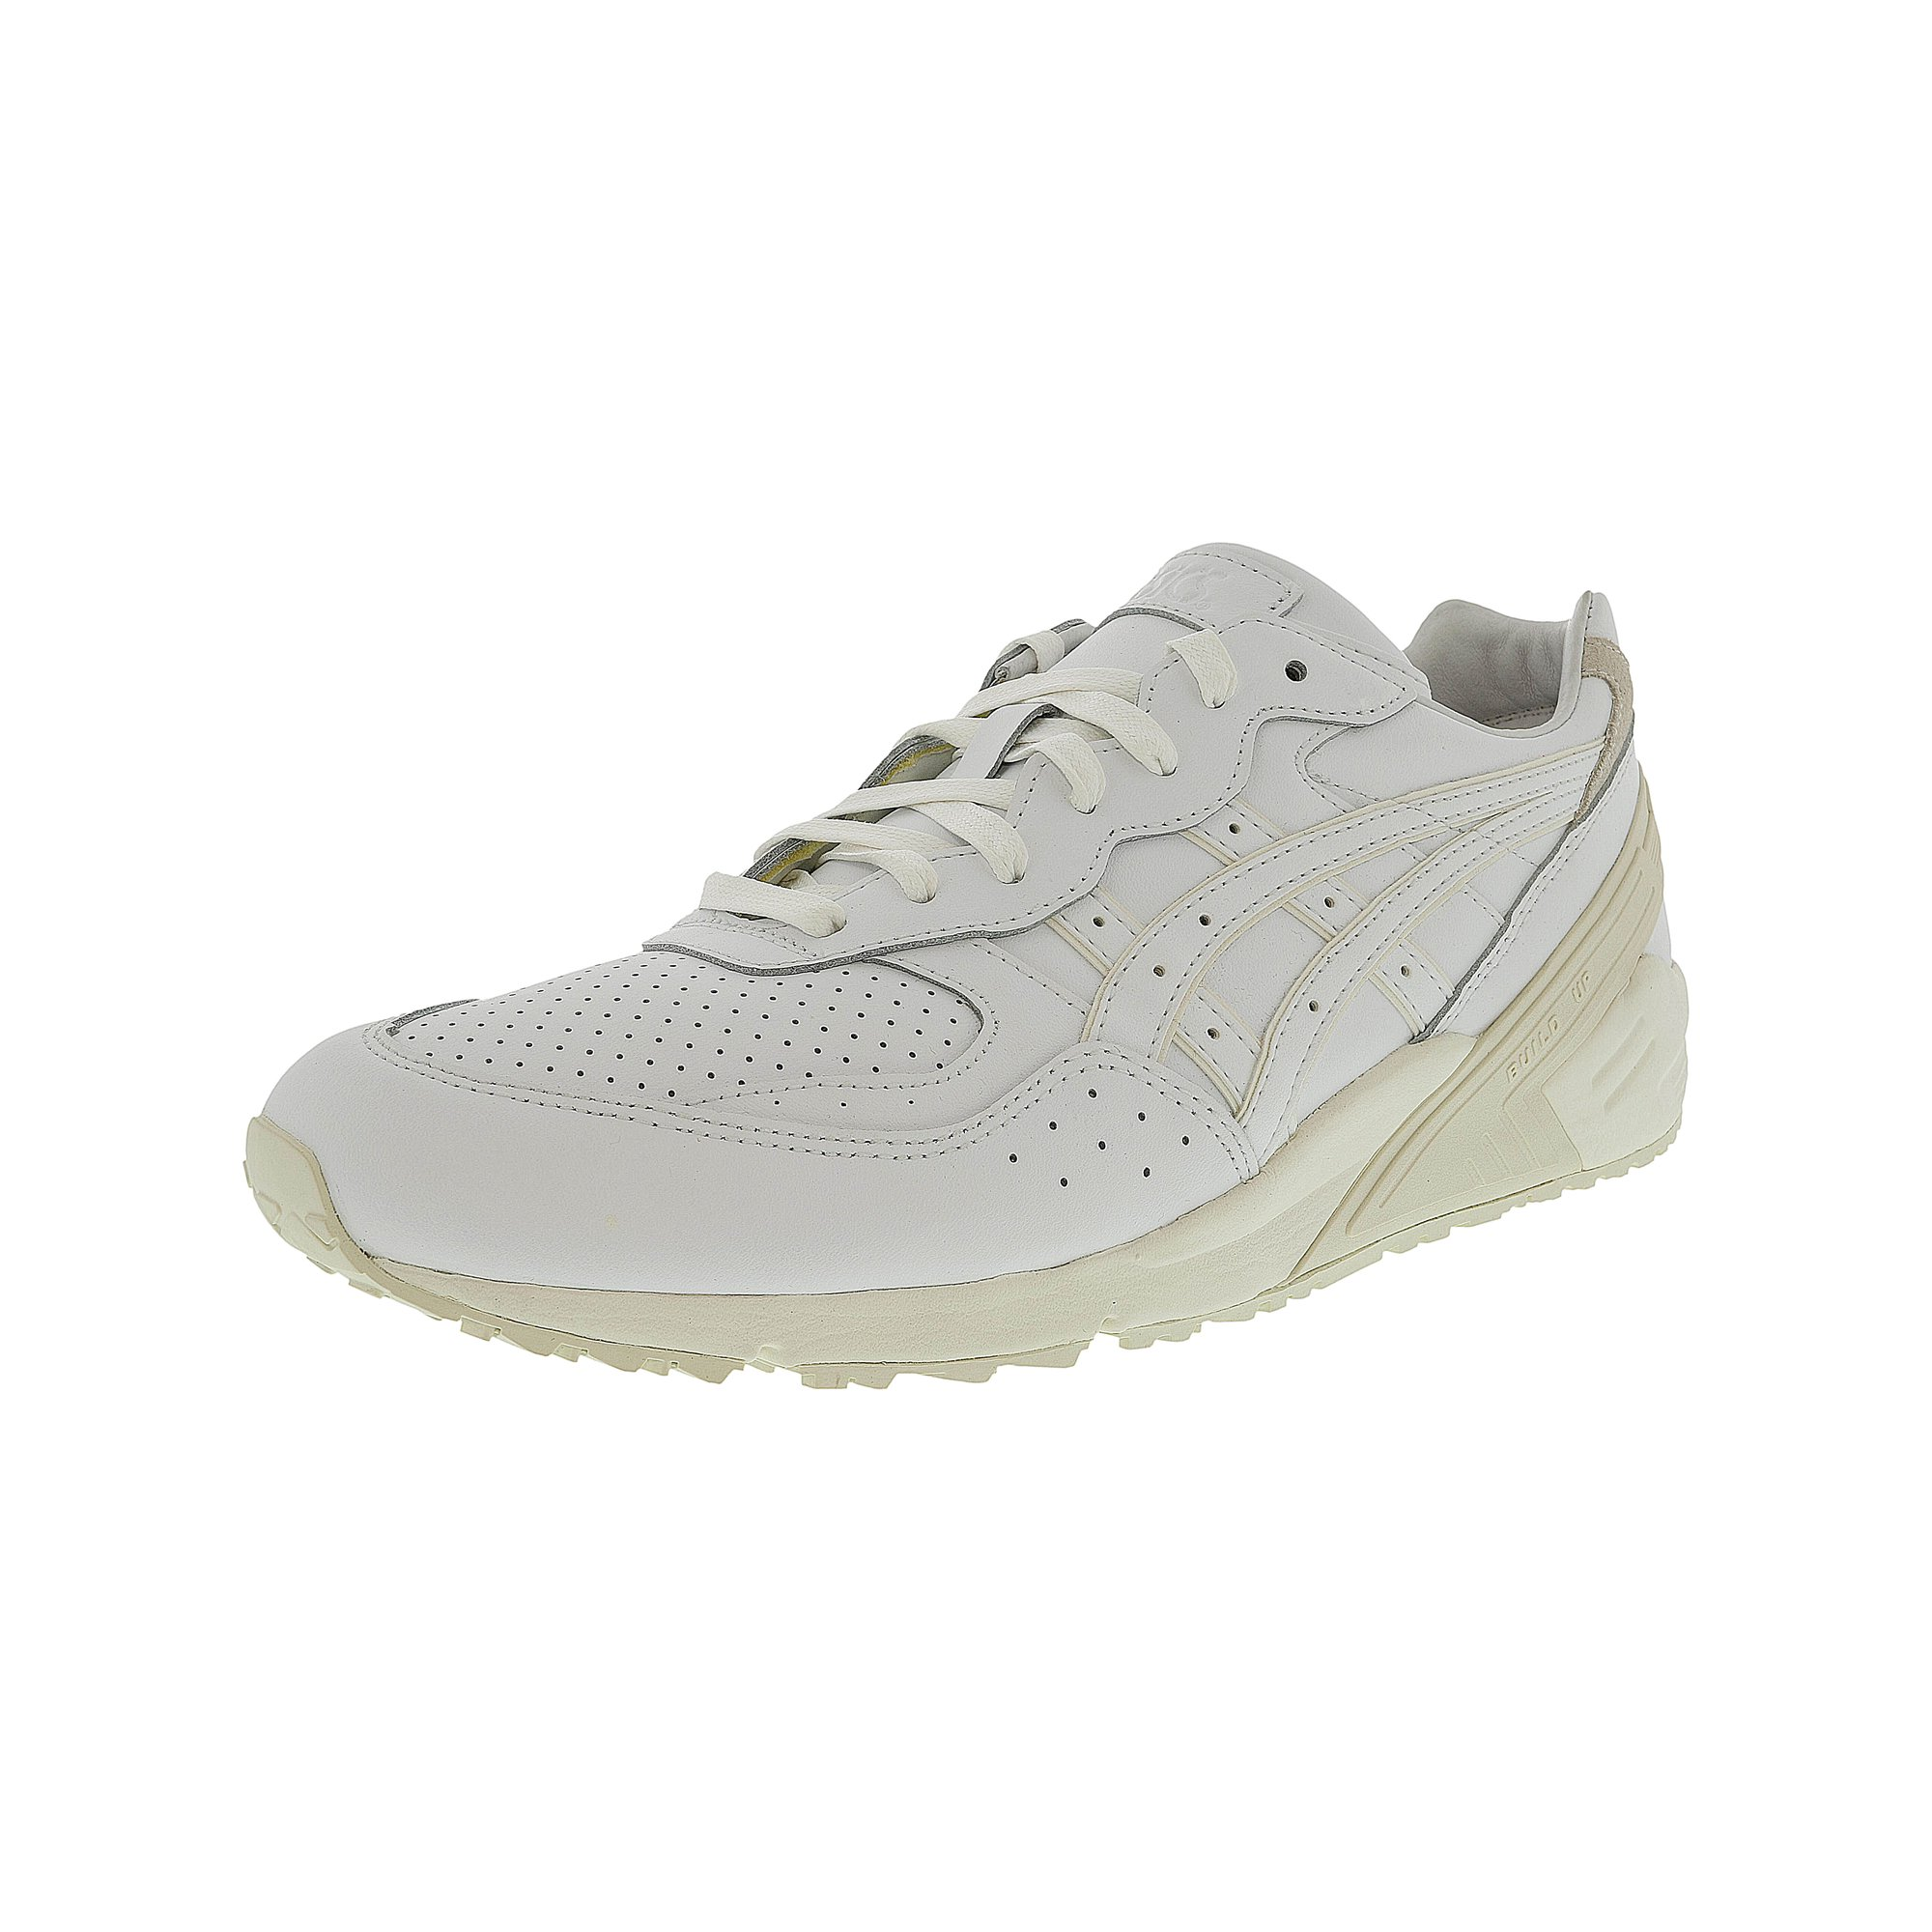 new style d4d3c b0672 Asics Gel-Sight White / Ankle-High Leather Tennis Shoe ...